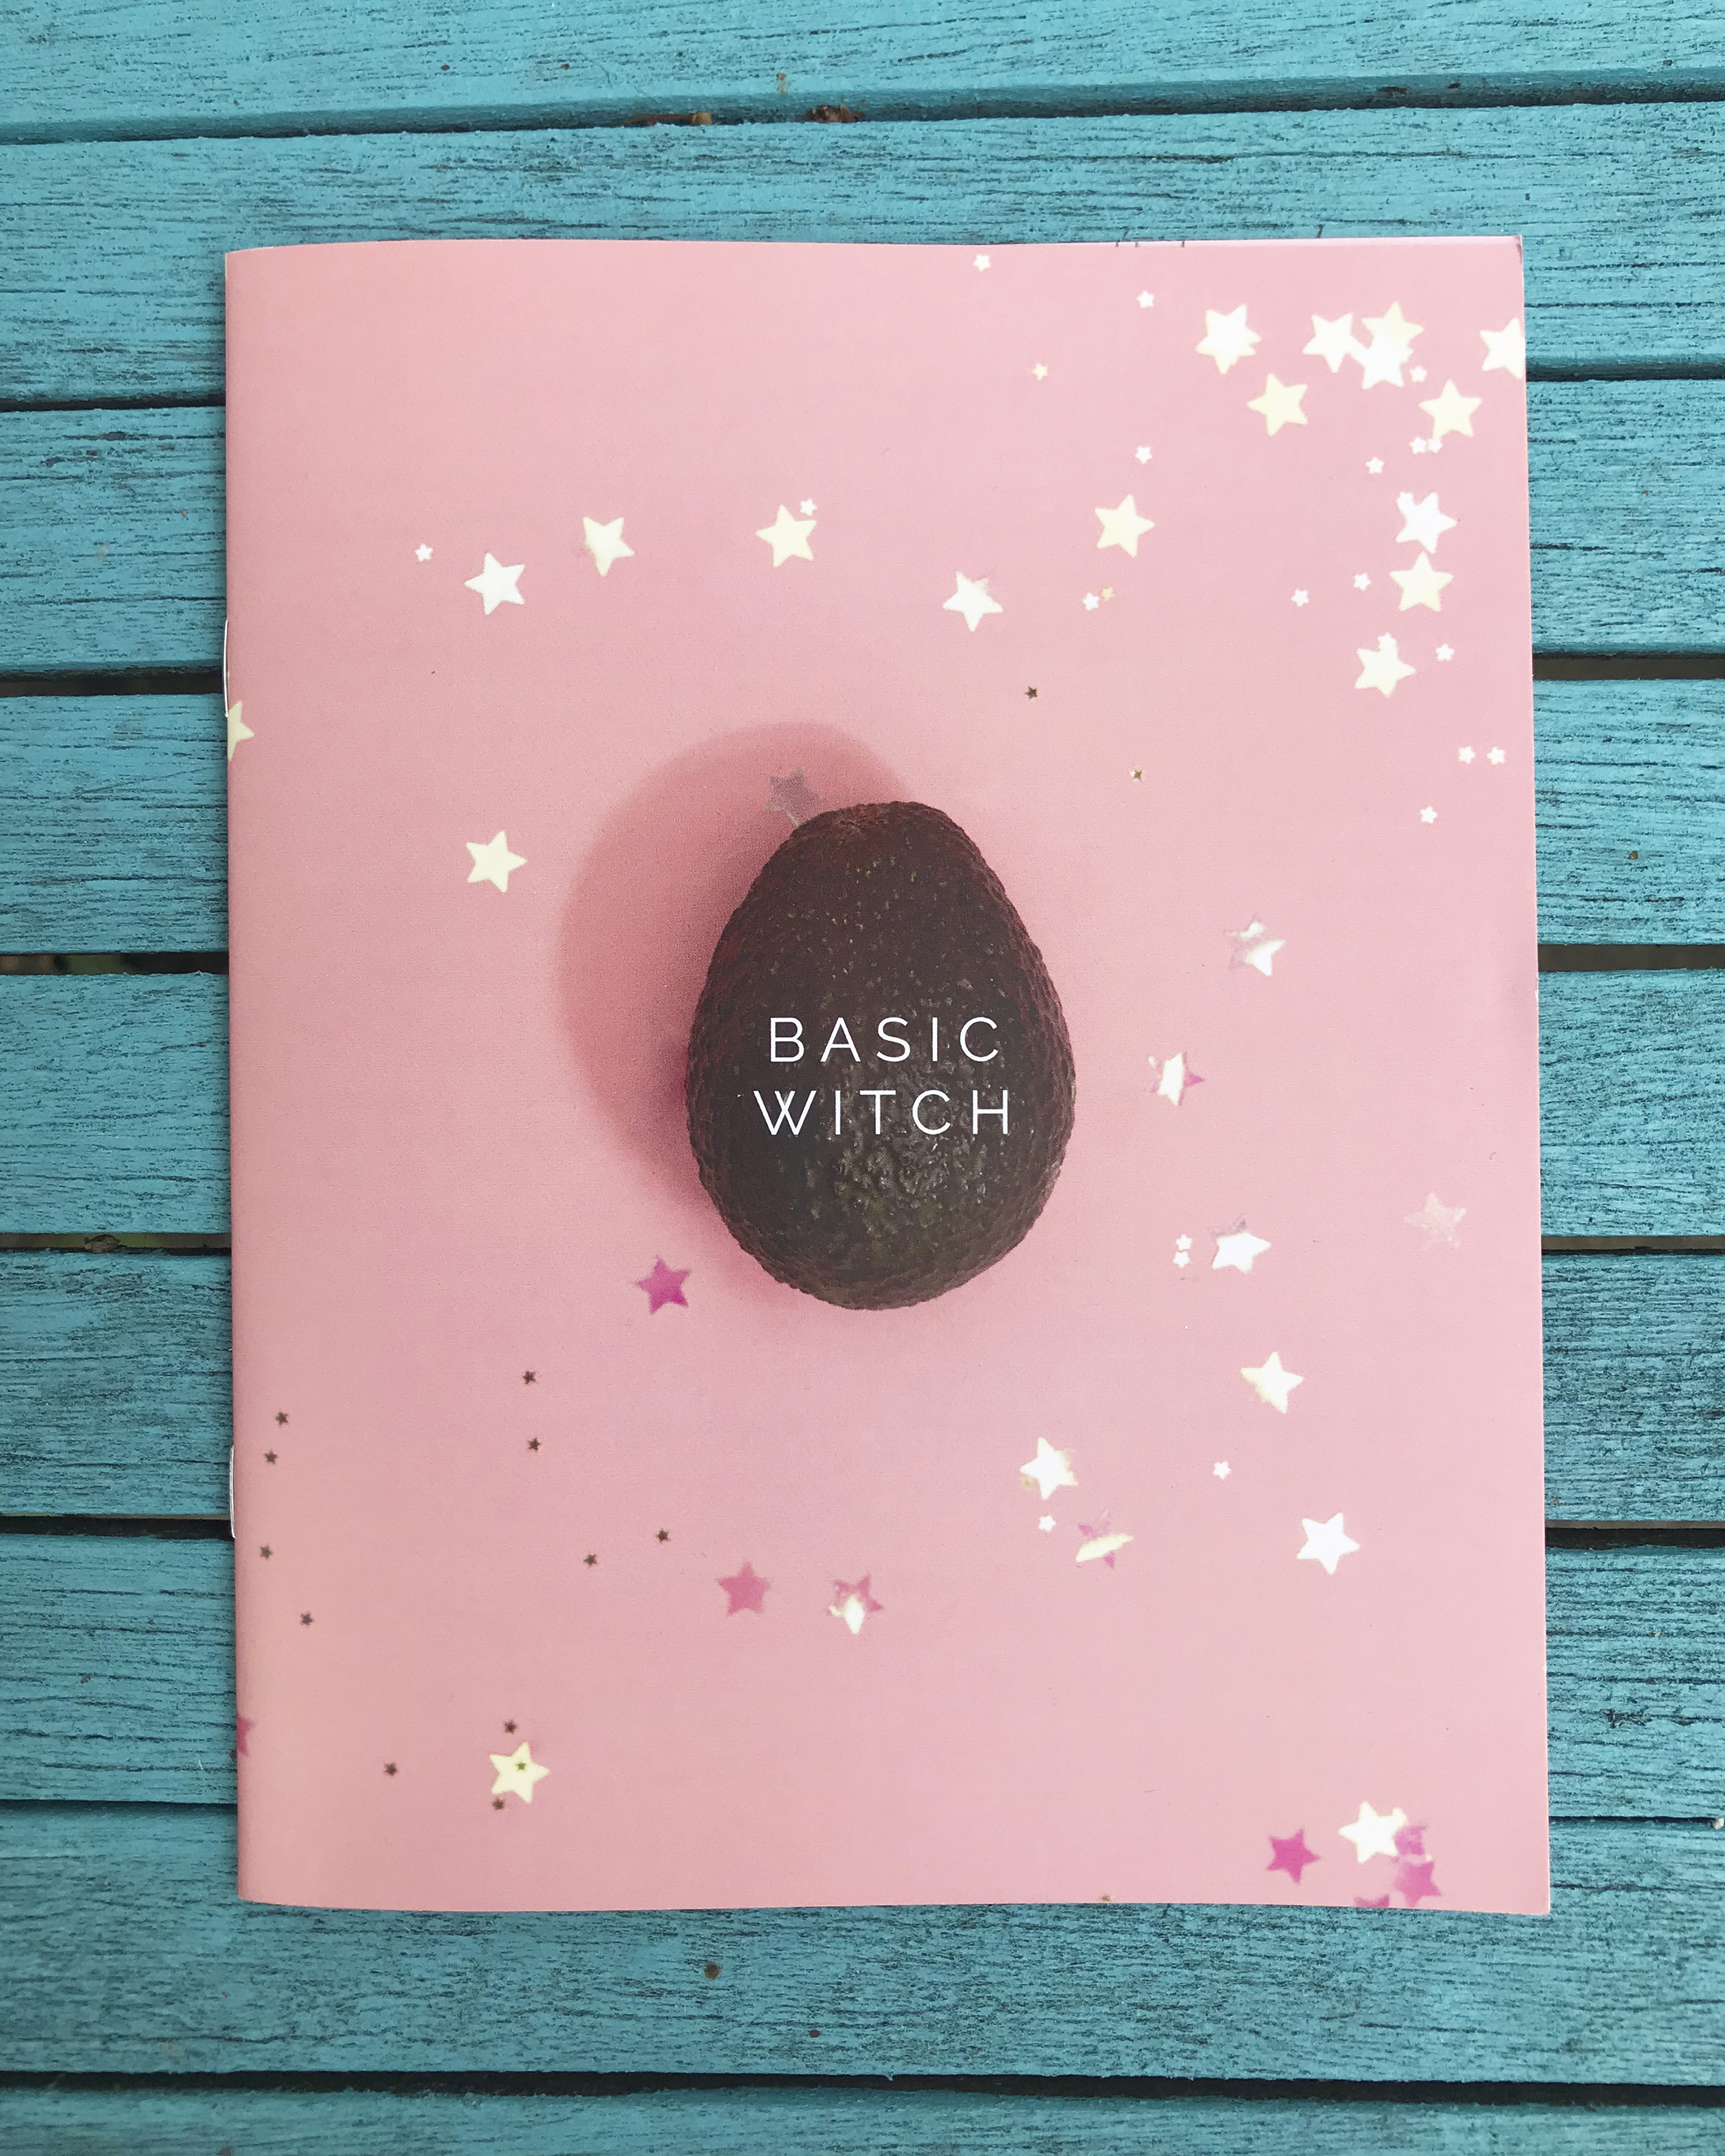 Basic Witch - Issue One   An essential spell-book for the modern witch, Basic Witch Zine is a satirical publication about witchcraft for the millennial hag on the go. Issue One offers advice on how to get revenge when a flakey friend stands you up for brunch, a guide to the most magical makeup applicators (dead man's finger anyone?) and how to tell if your pregnancy scare is in fact the spawn of Satan. Basic Witch is conjured up seasonally by Teän Roberts and Cormac Cleary.